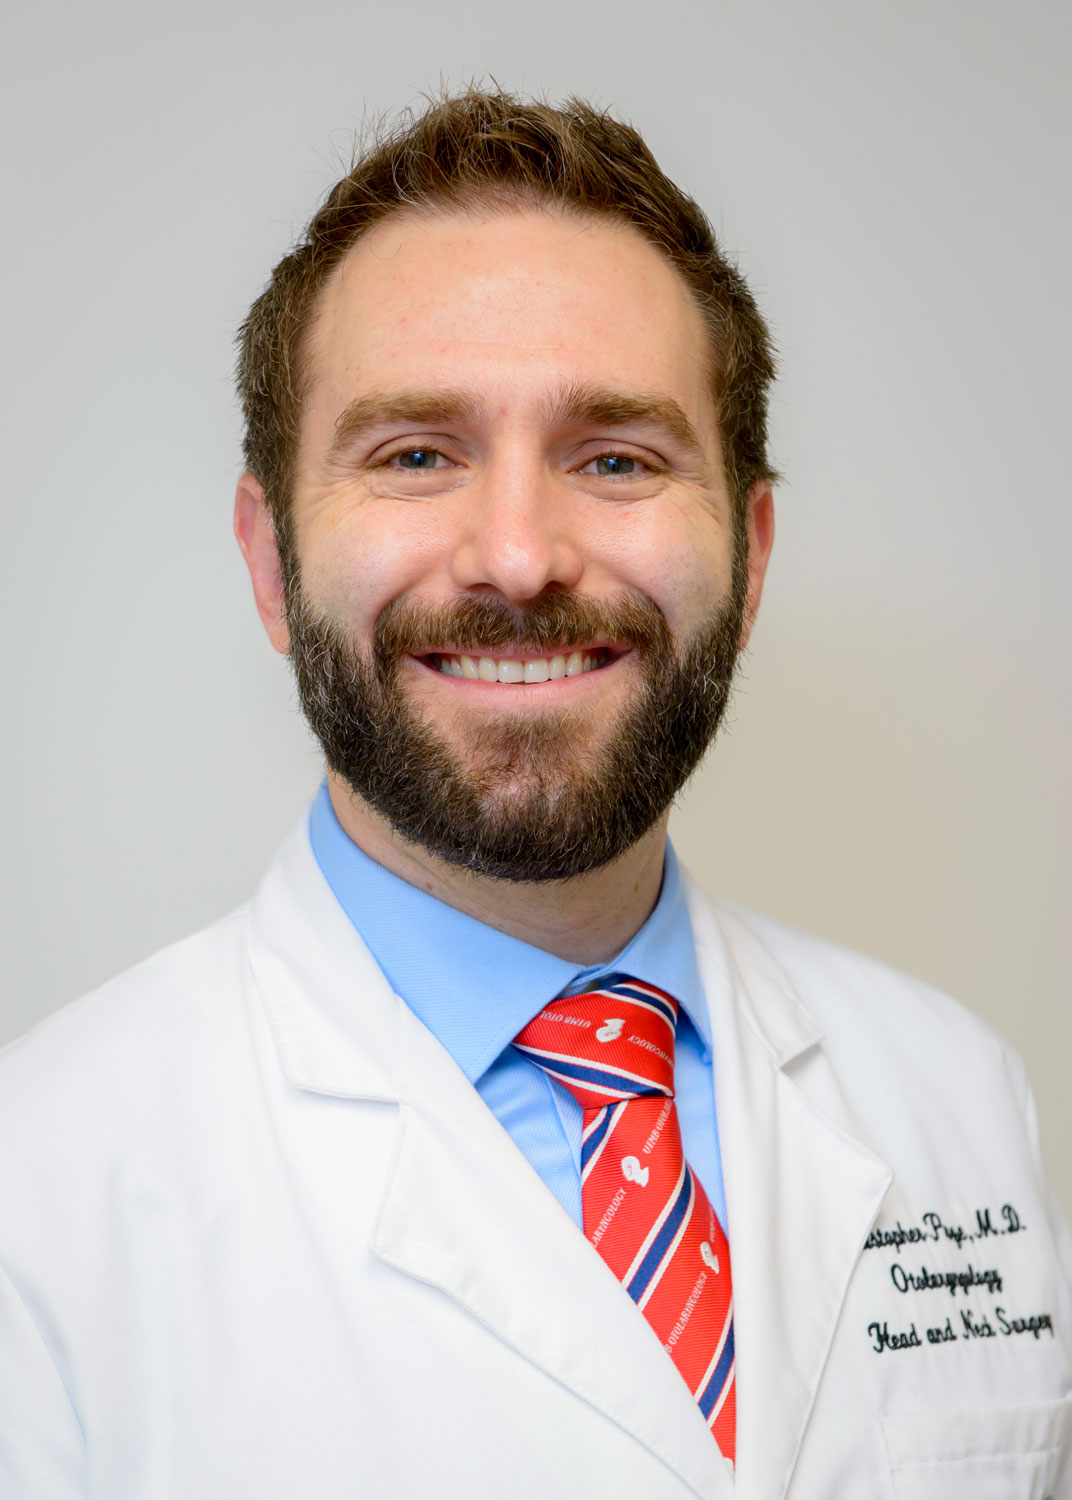 Chris Prze, MD